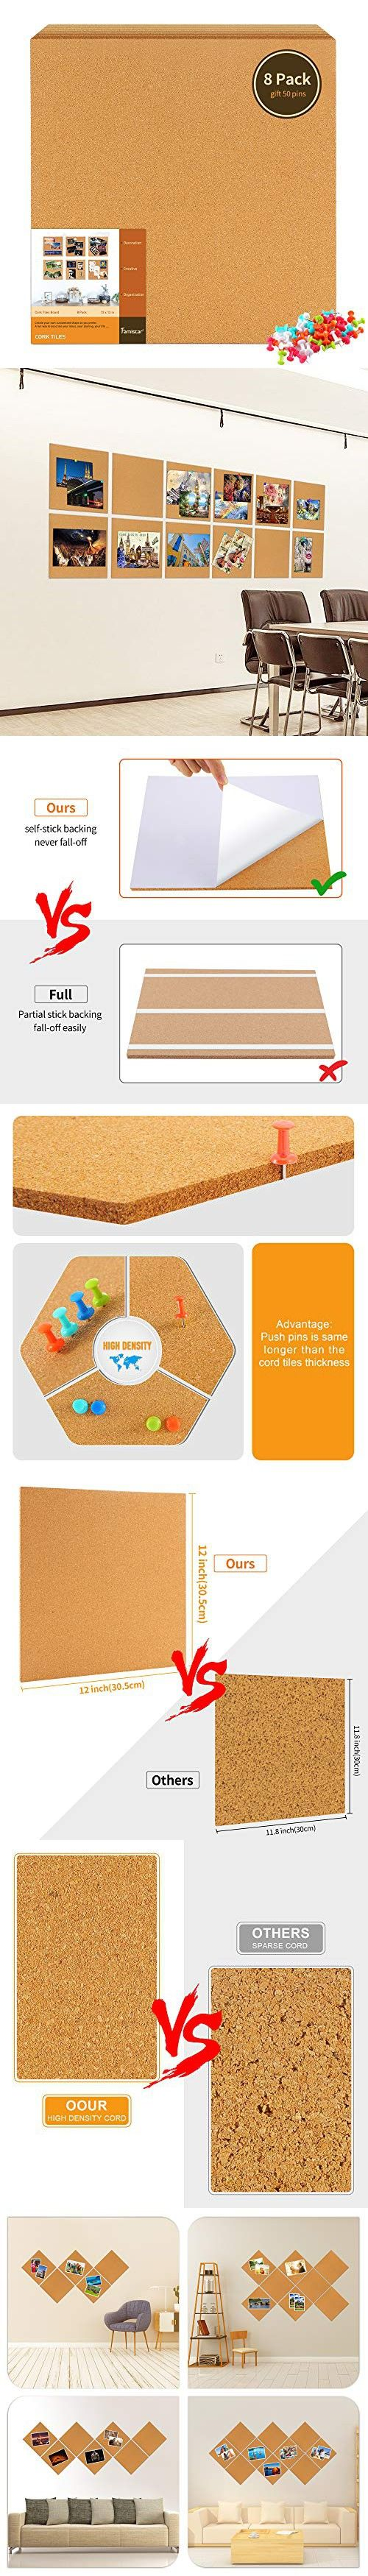 Famistar 12 X 12 Square Cork Board Tiles 8 Pack With Full Sticky Back Mini Wall Bulletin Boards Pin Board Decoration For Pictures Photos Notes Goals Cork Board Tiles Cork Board Board Decoration